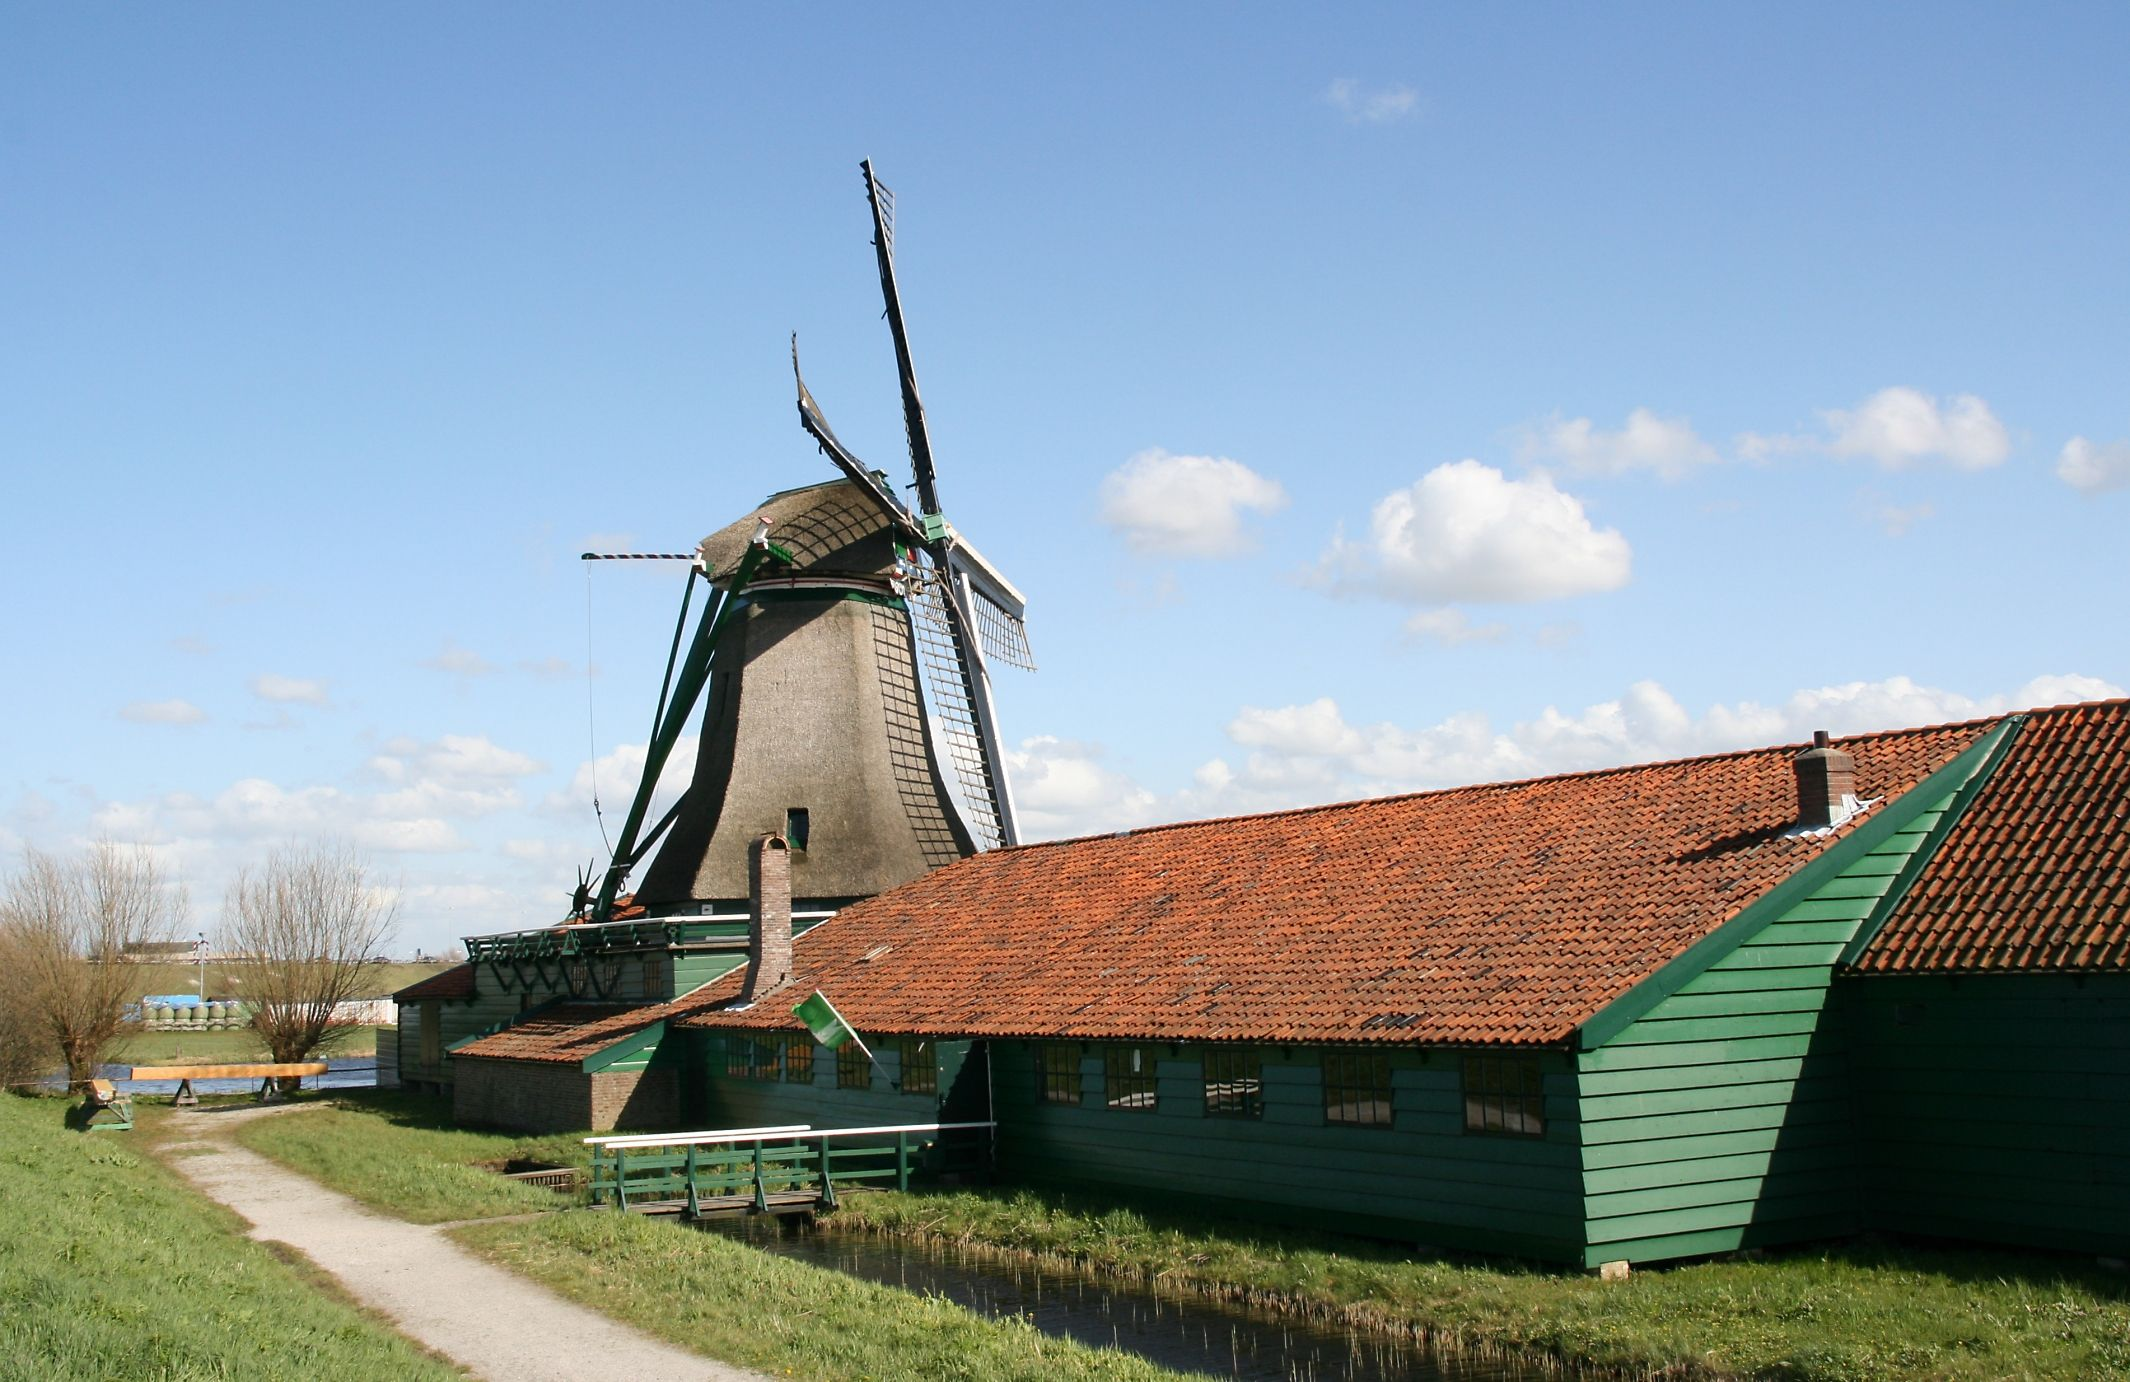 Paper mill De Schoolmeester, Westzaan, the Netherlands.